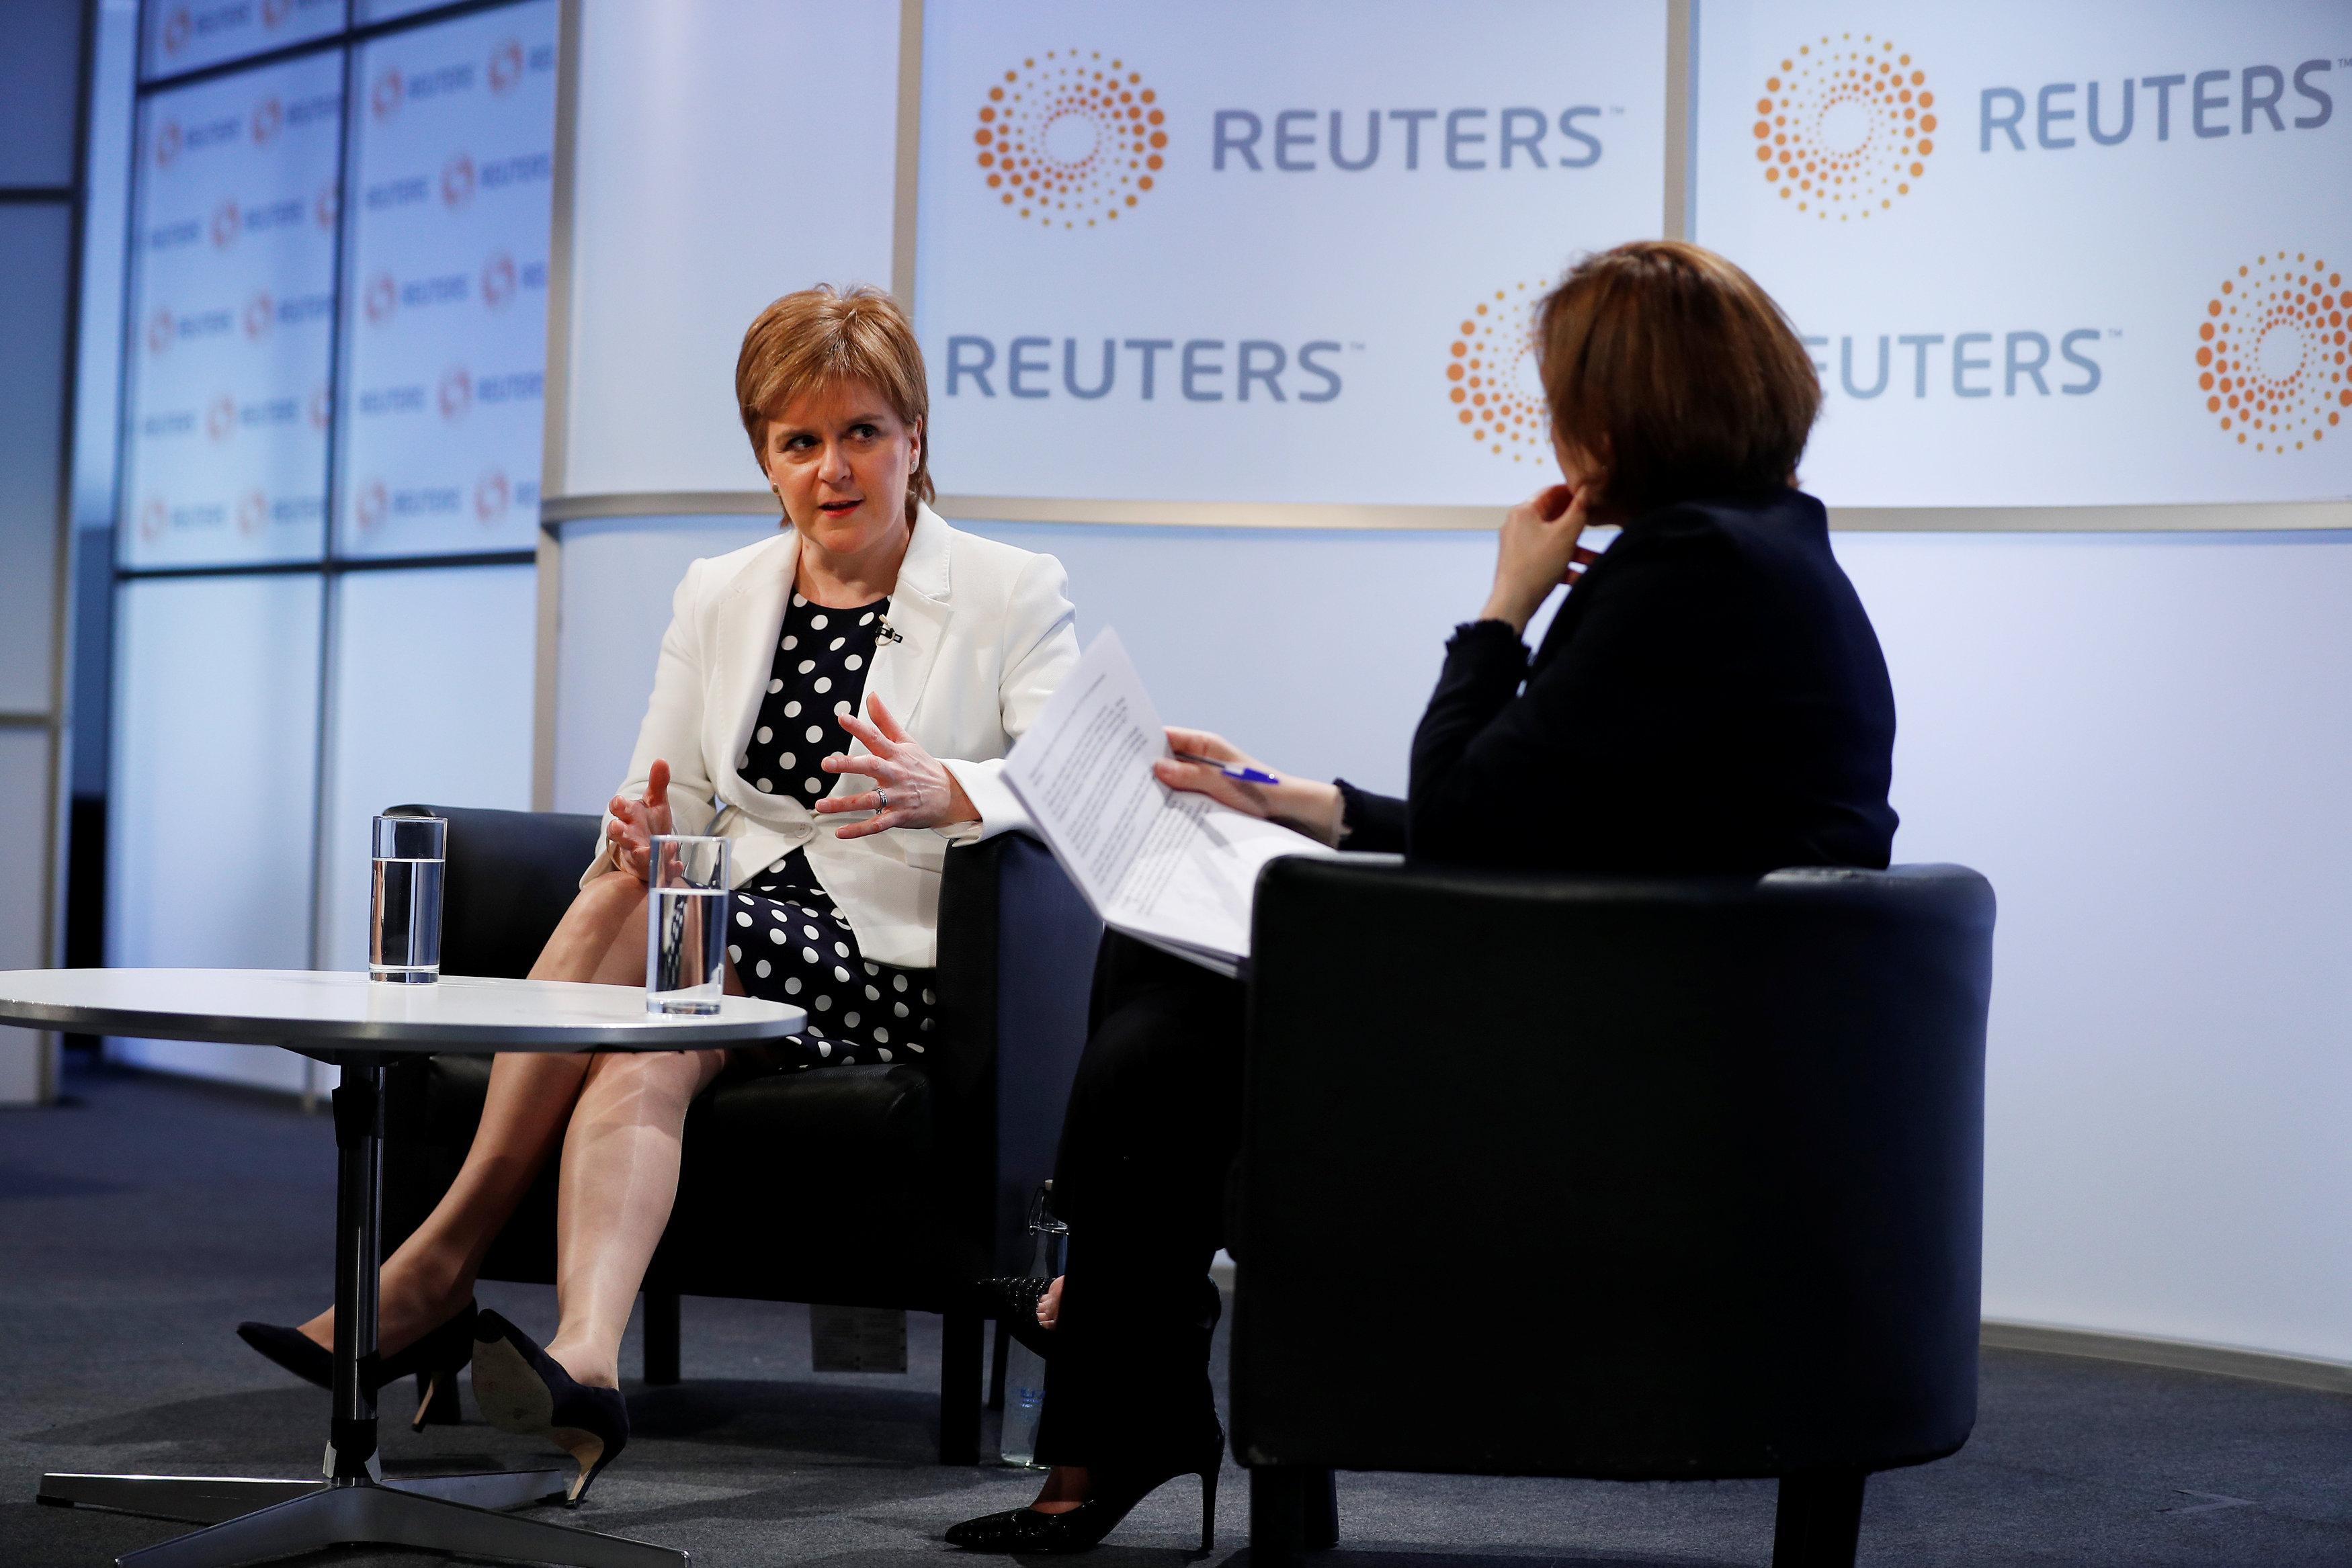 Scottish independence is never off the table, Sturgeon says